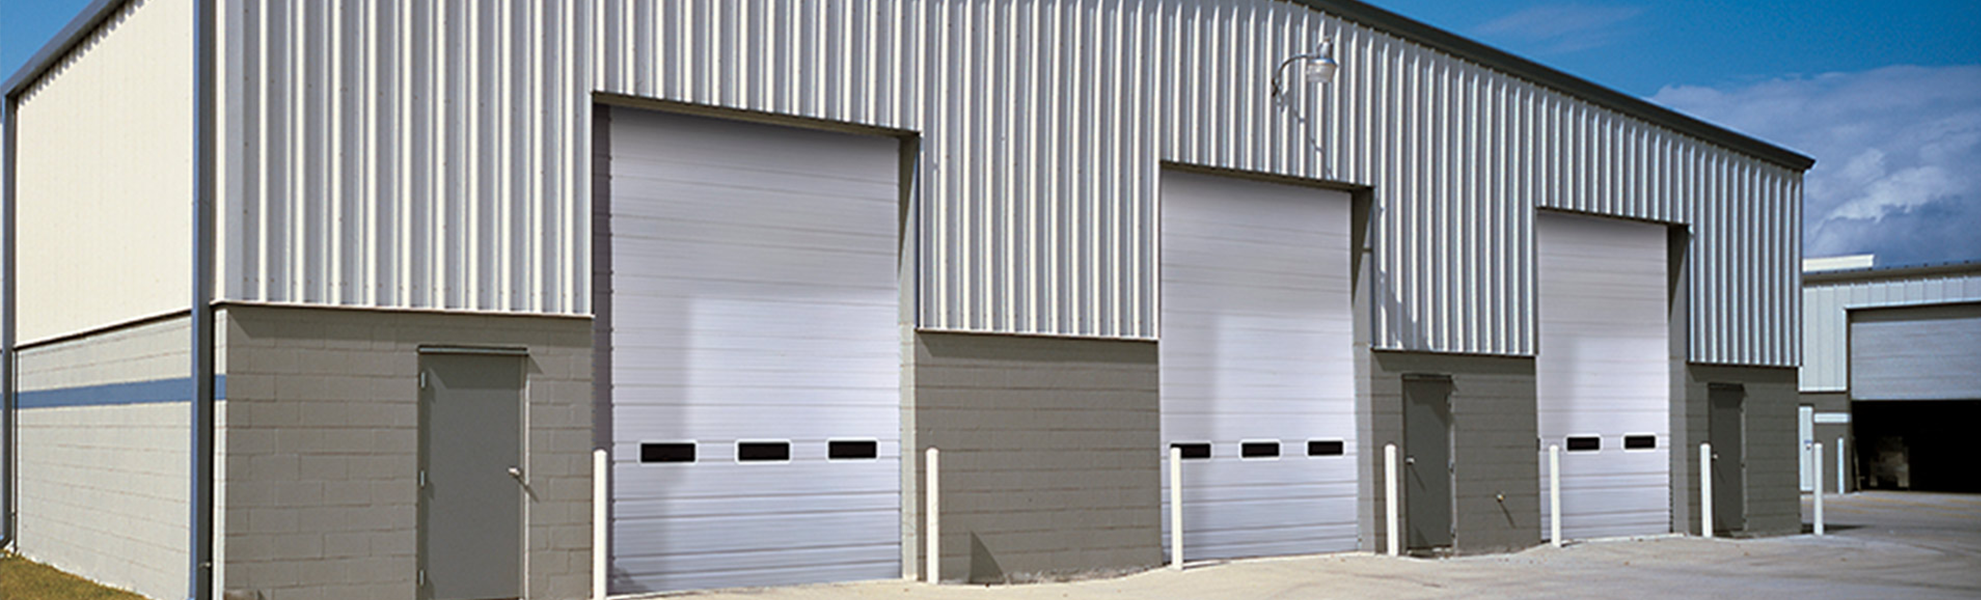 commercial garage door evanston il